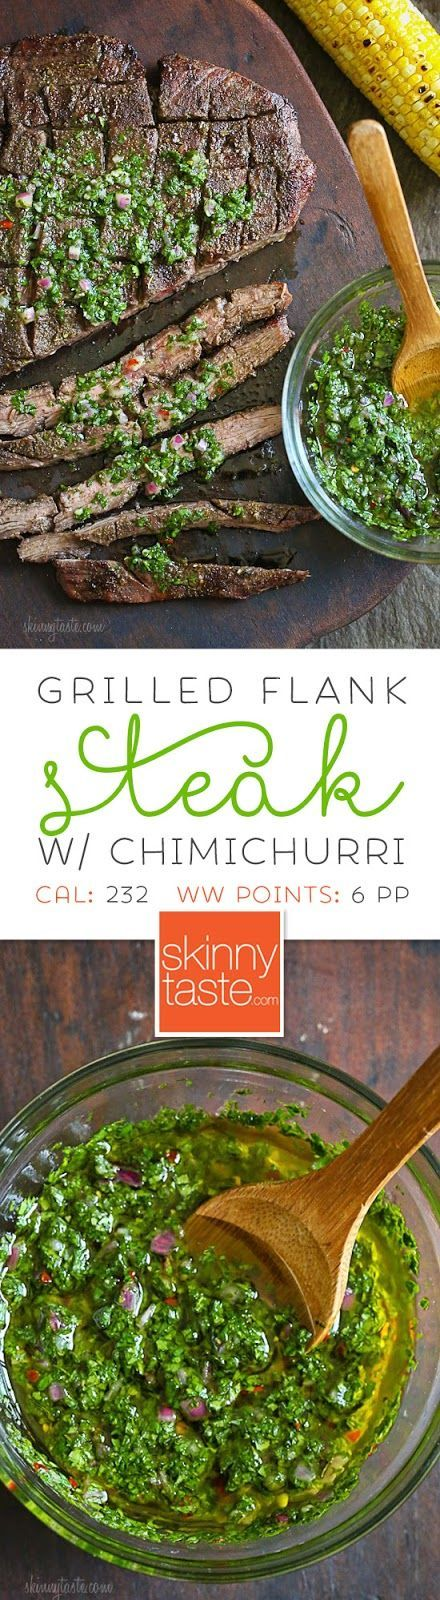 Grilled Flank Steak with Chimichurri –flank is a leaner steak, perfect for grilling topped with this delicious chimichurri sauce.